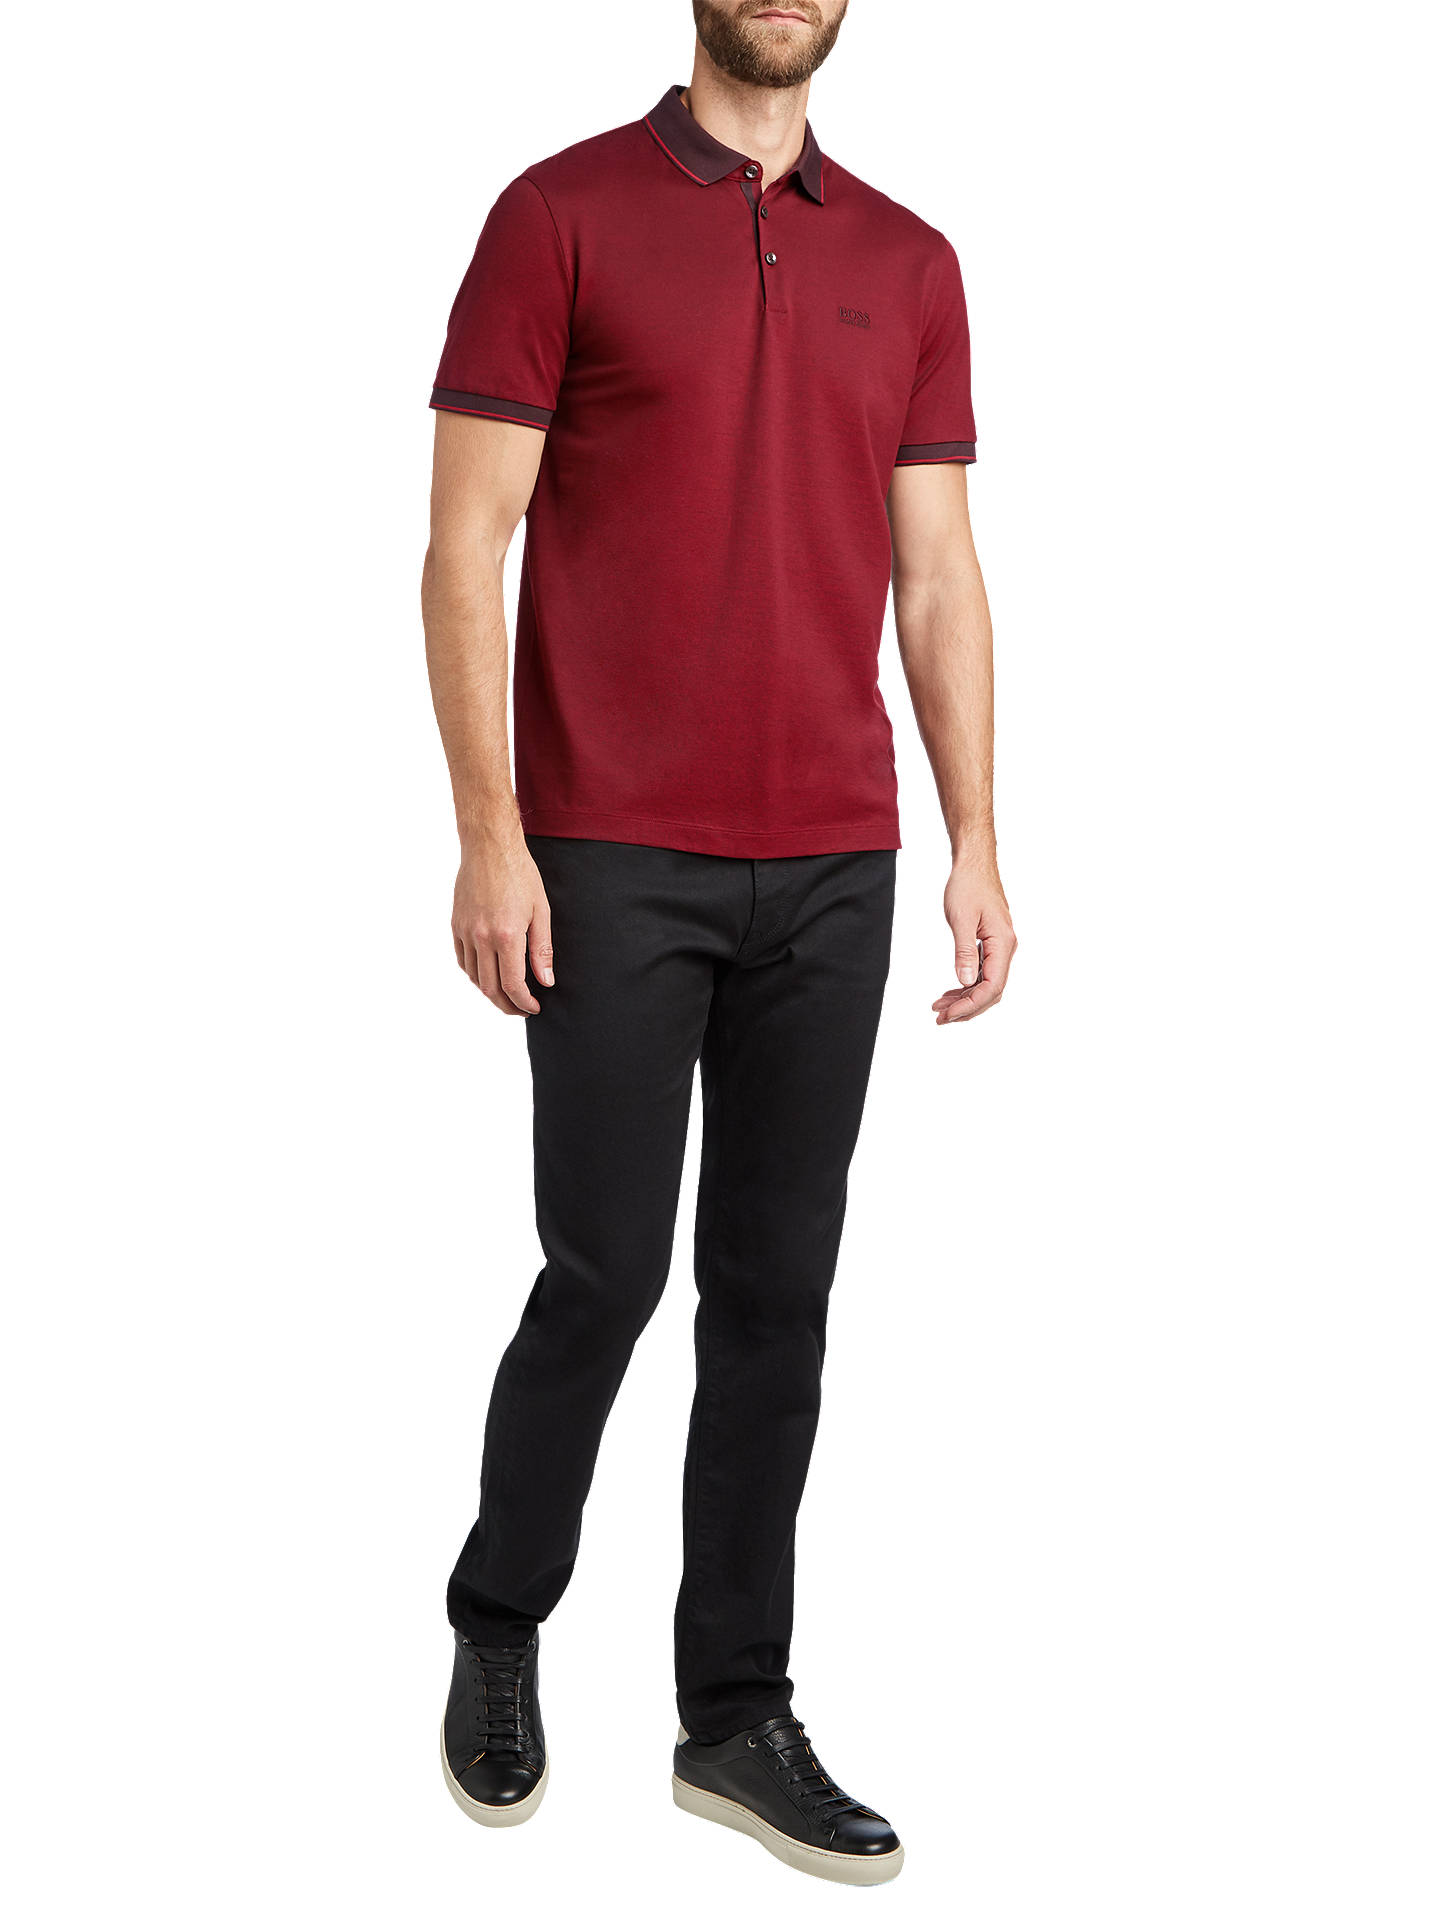 BuyBOSS Prout Short Sleeve Polo Shirt, Dark Brown, S Online at johnlewis.com